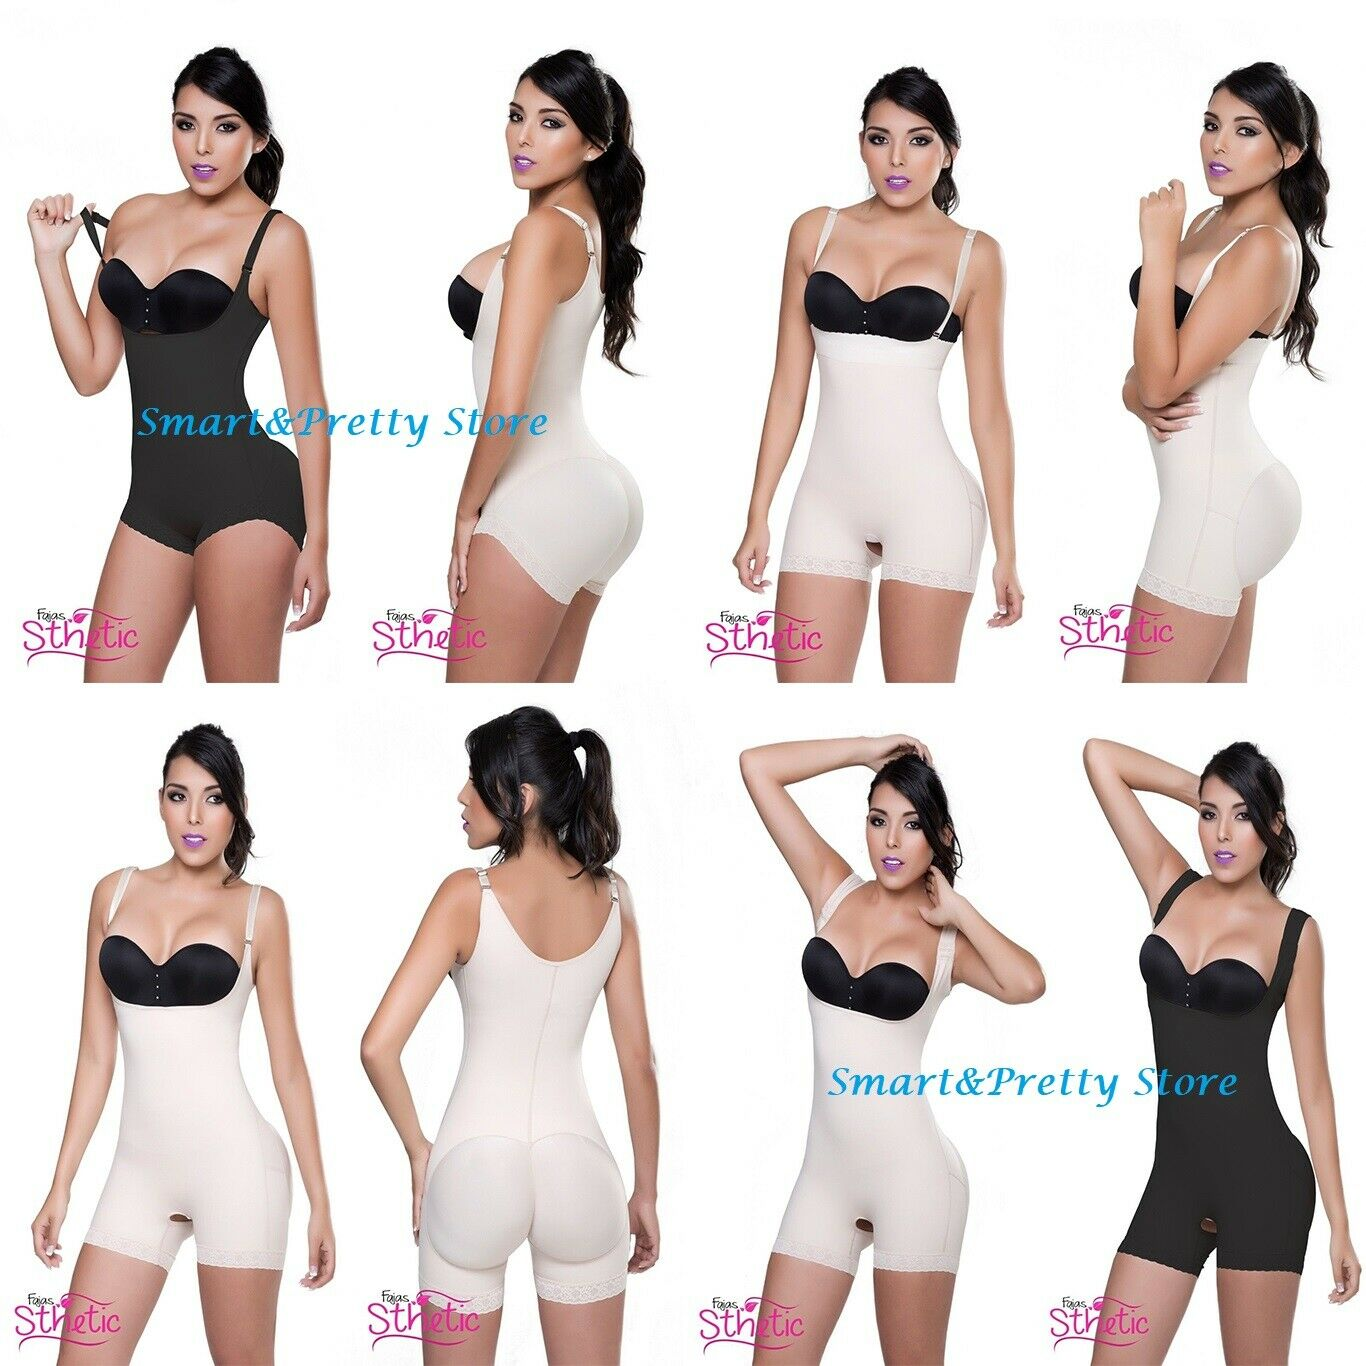 New Comfy Collection 100% Colombian Shape Your Body Fajate&Reduce Medidas Moldea